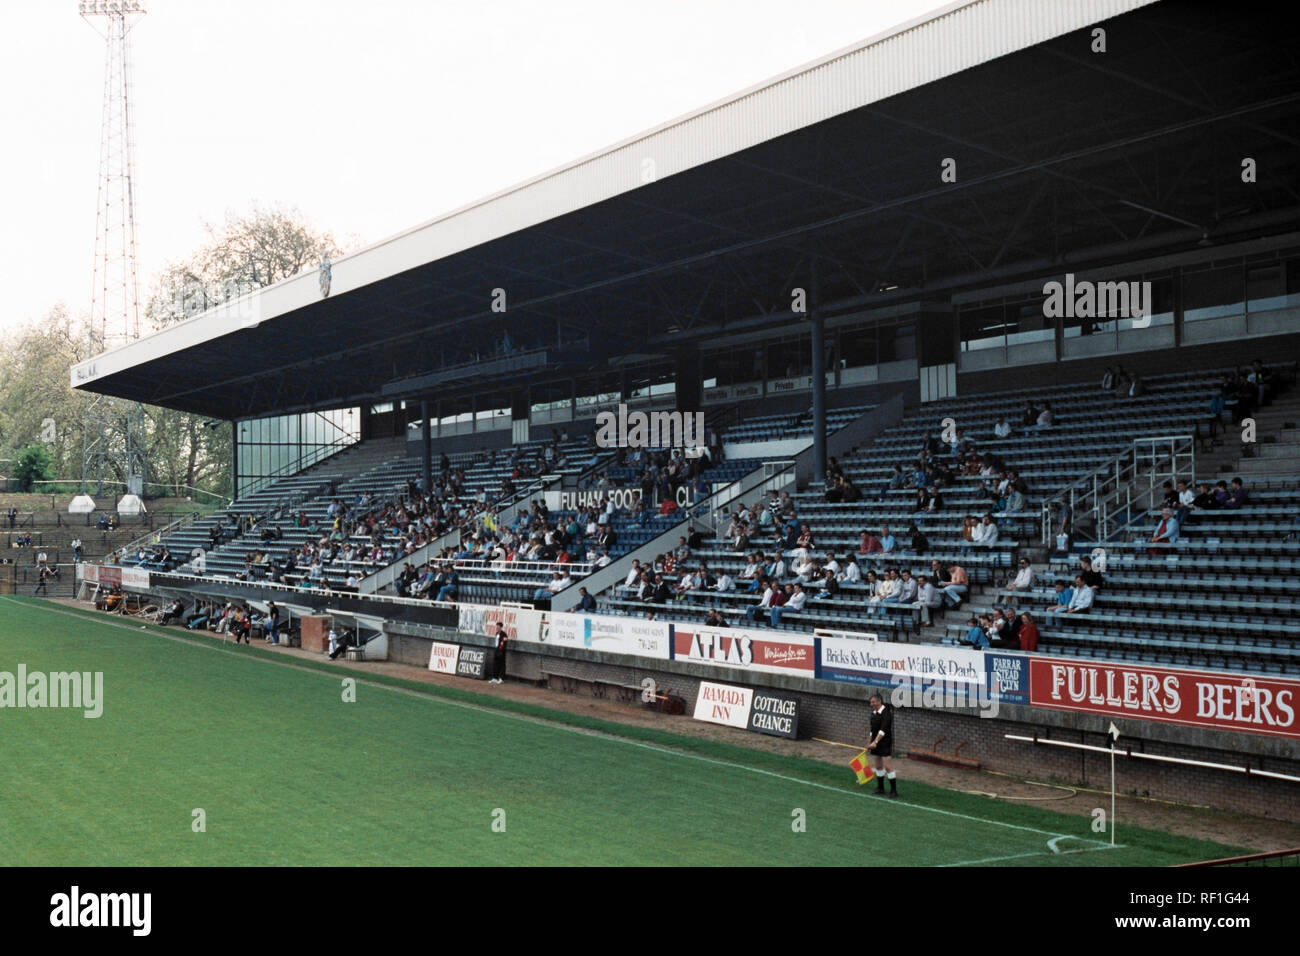 General view of Fulham FC Football Ground, Craven Cottage, Fulham, London, pictured on 27th May 1991 - Stock Image